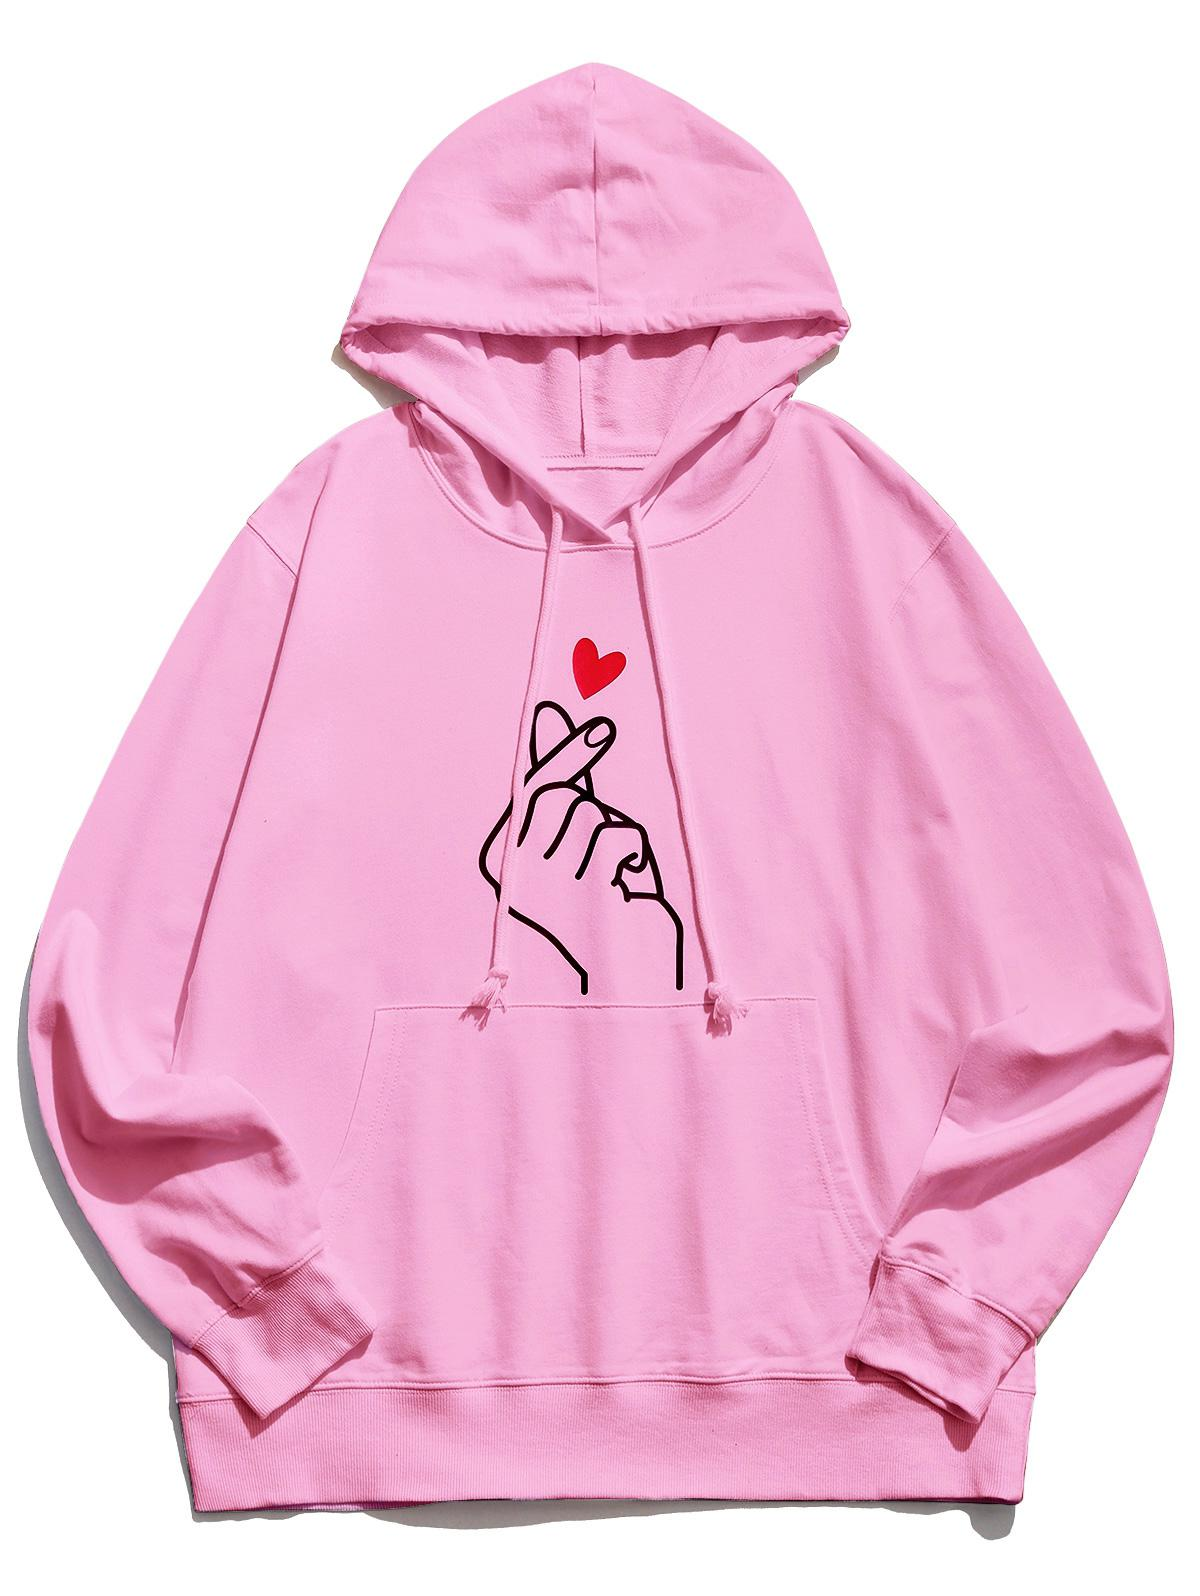 Finger Heart Graphic Pouch Pocket Casual Hoodie фото